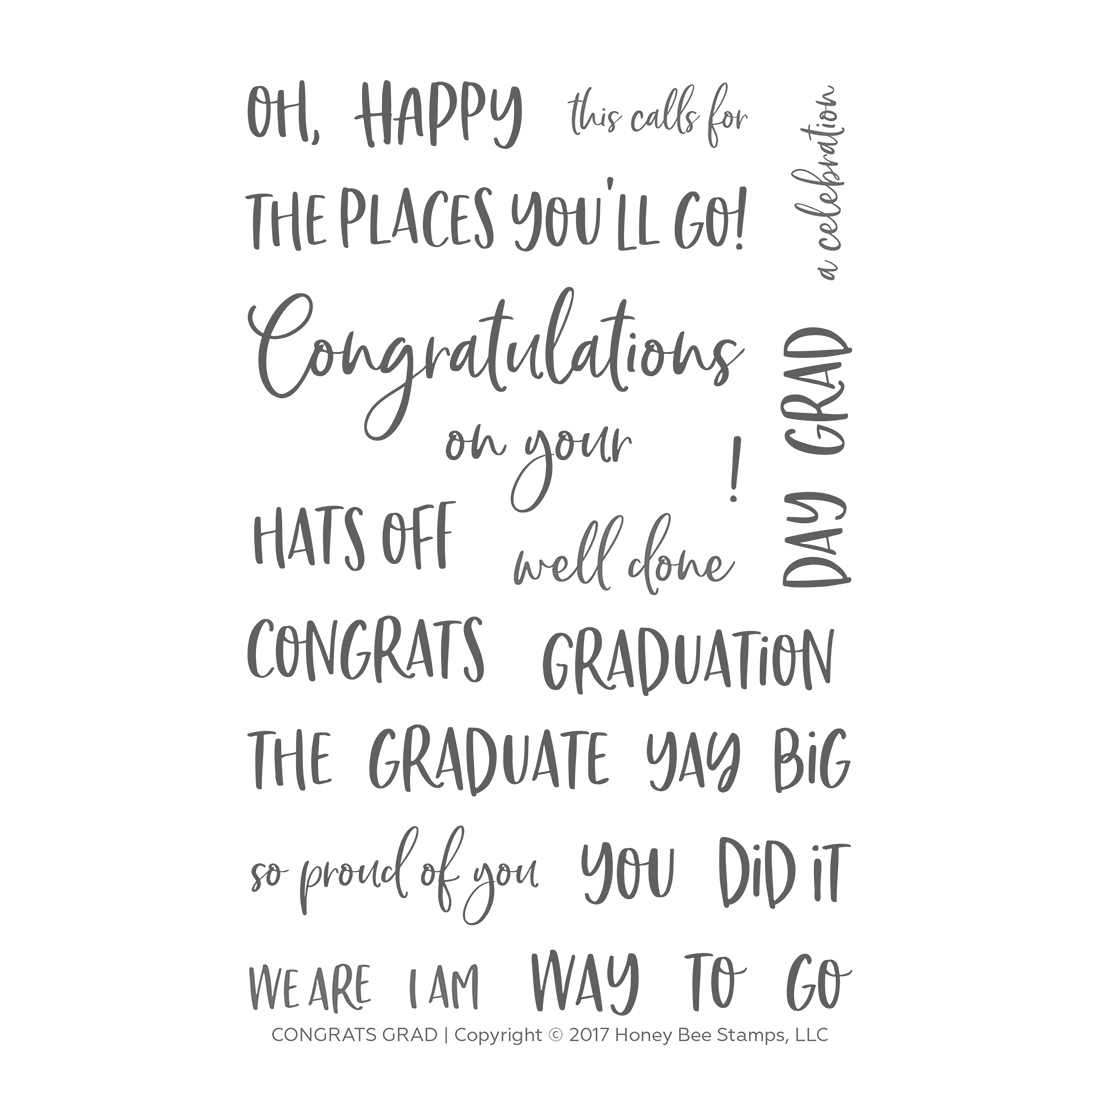 Honeybee Bee Stamps - Congrats Grad | 4x6 Stamp Set